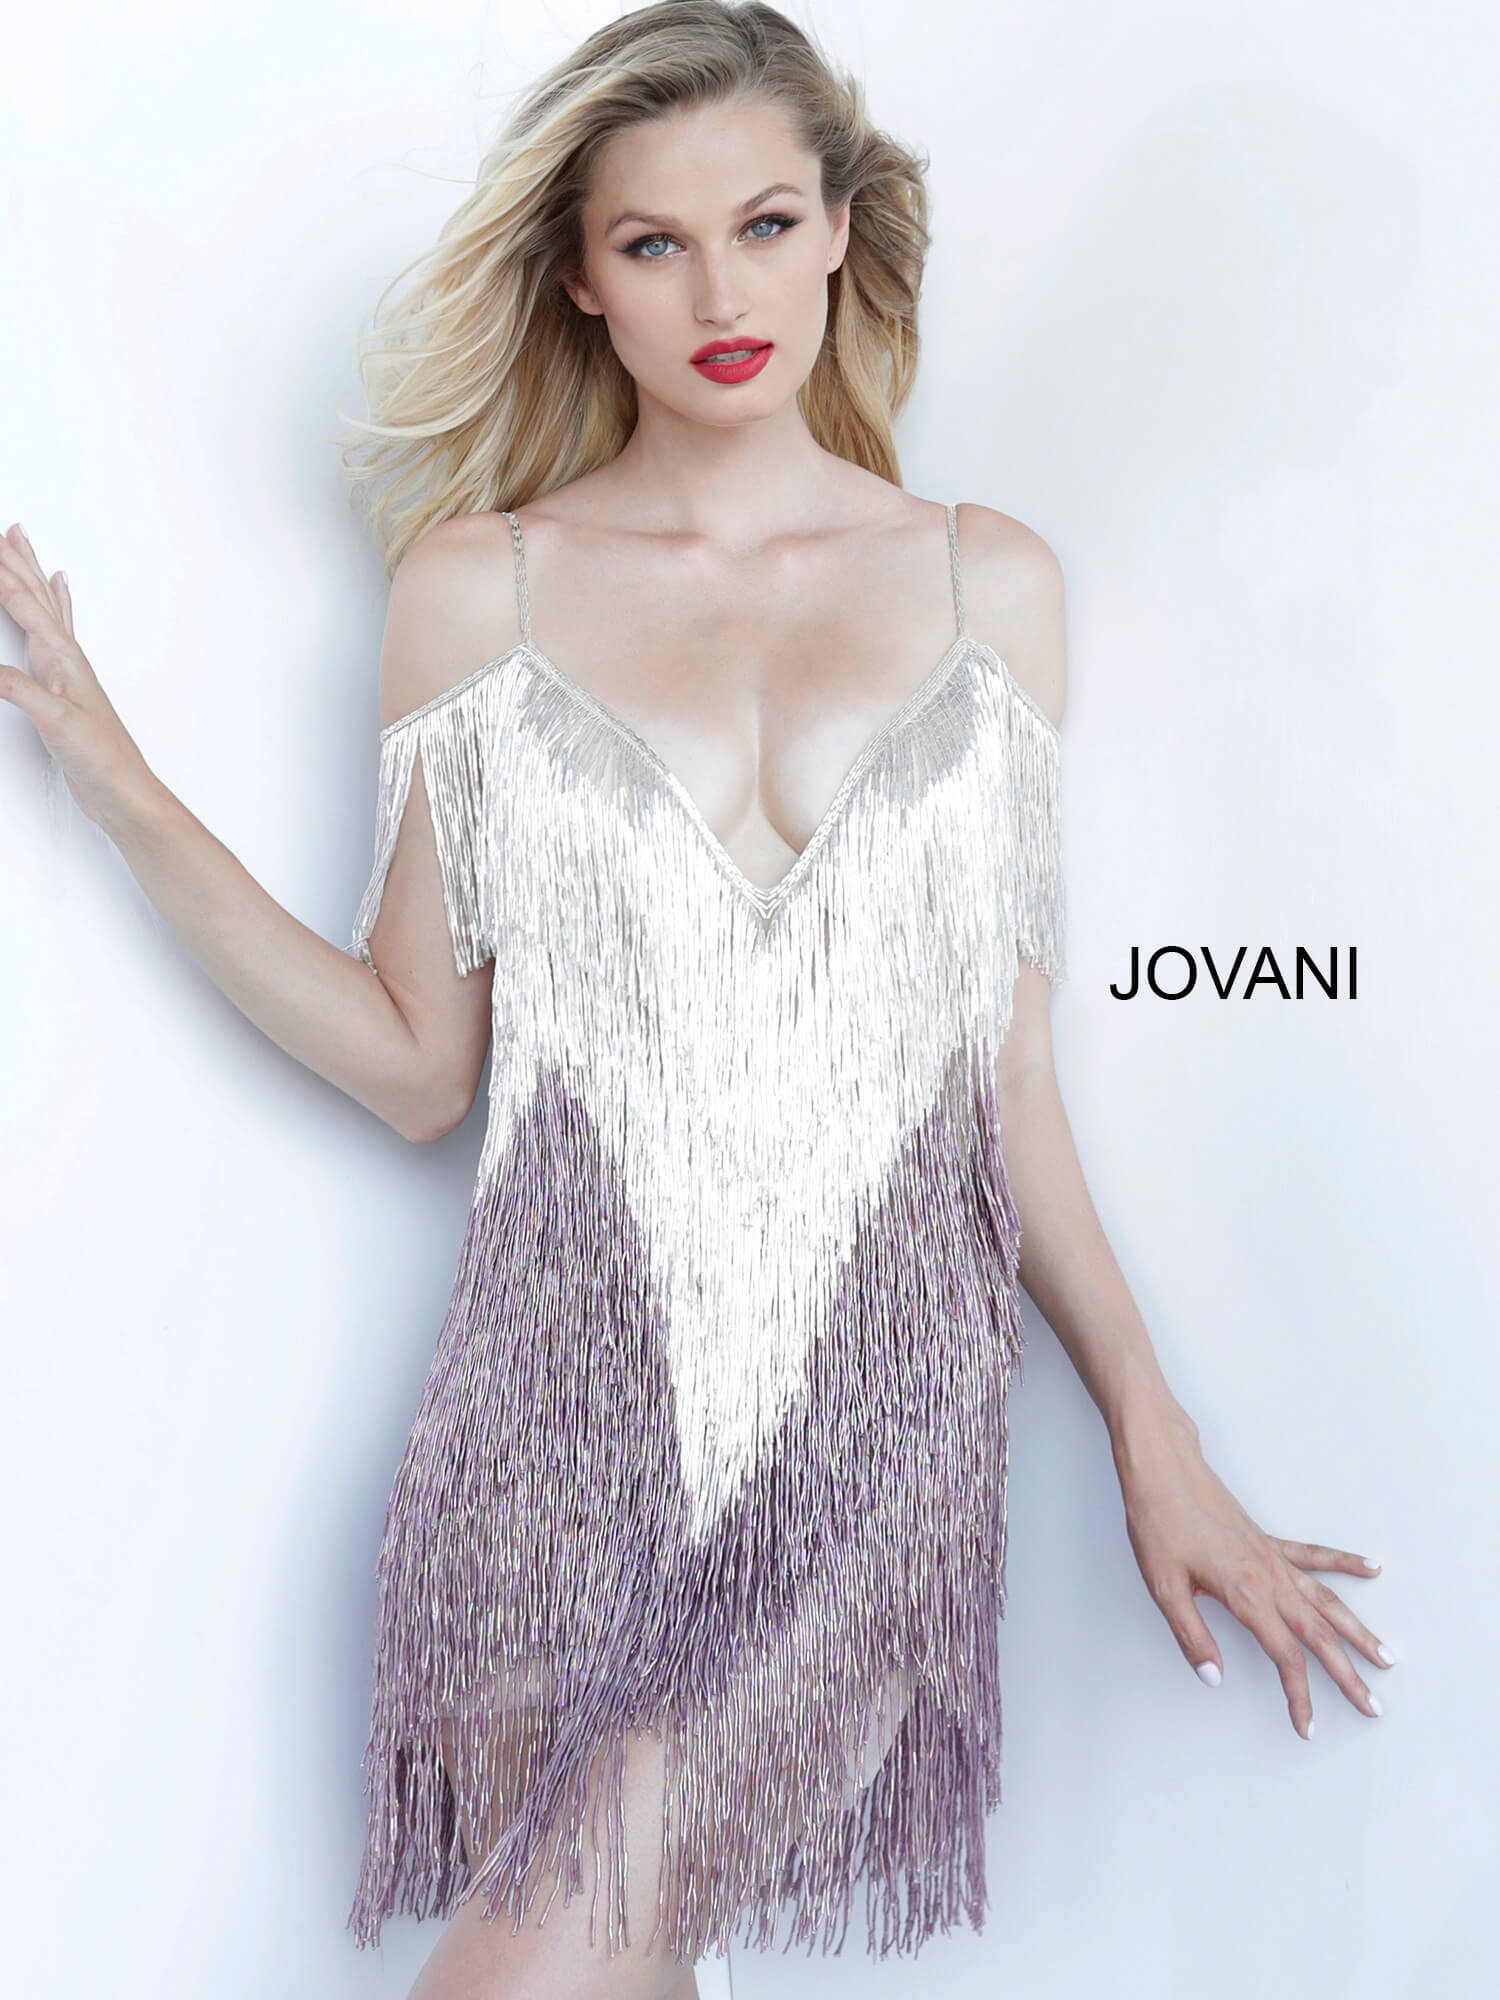 jovani Jovani 1753 Multi Plunging Neckline Fringe Cocktail Dress  on mobile 1